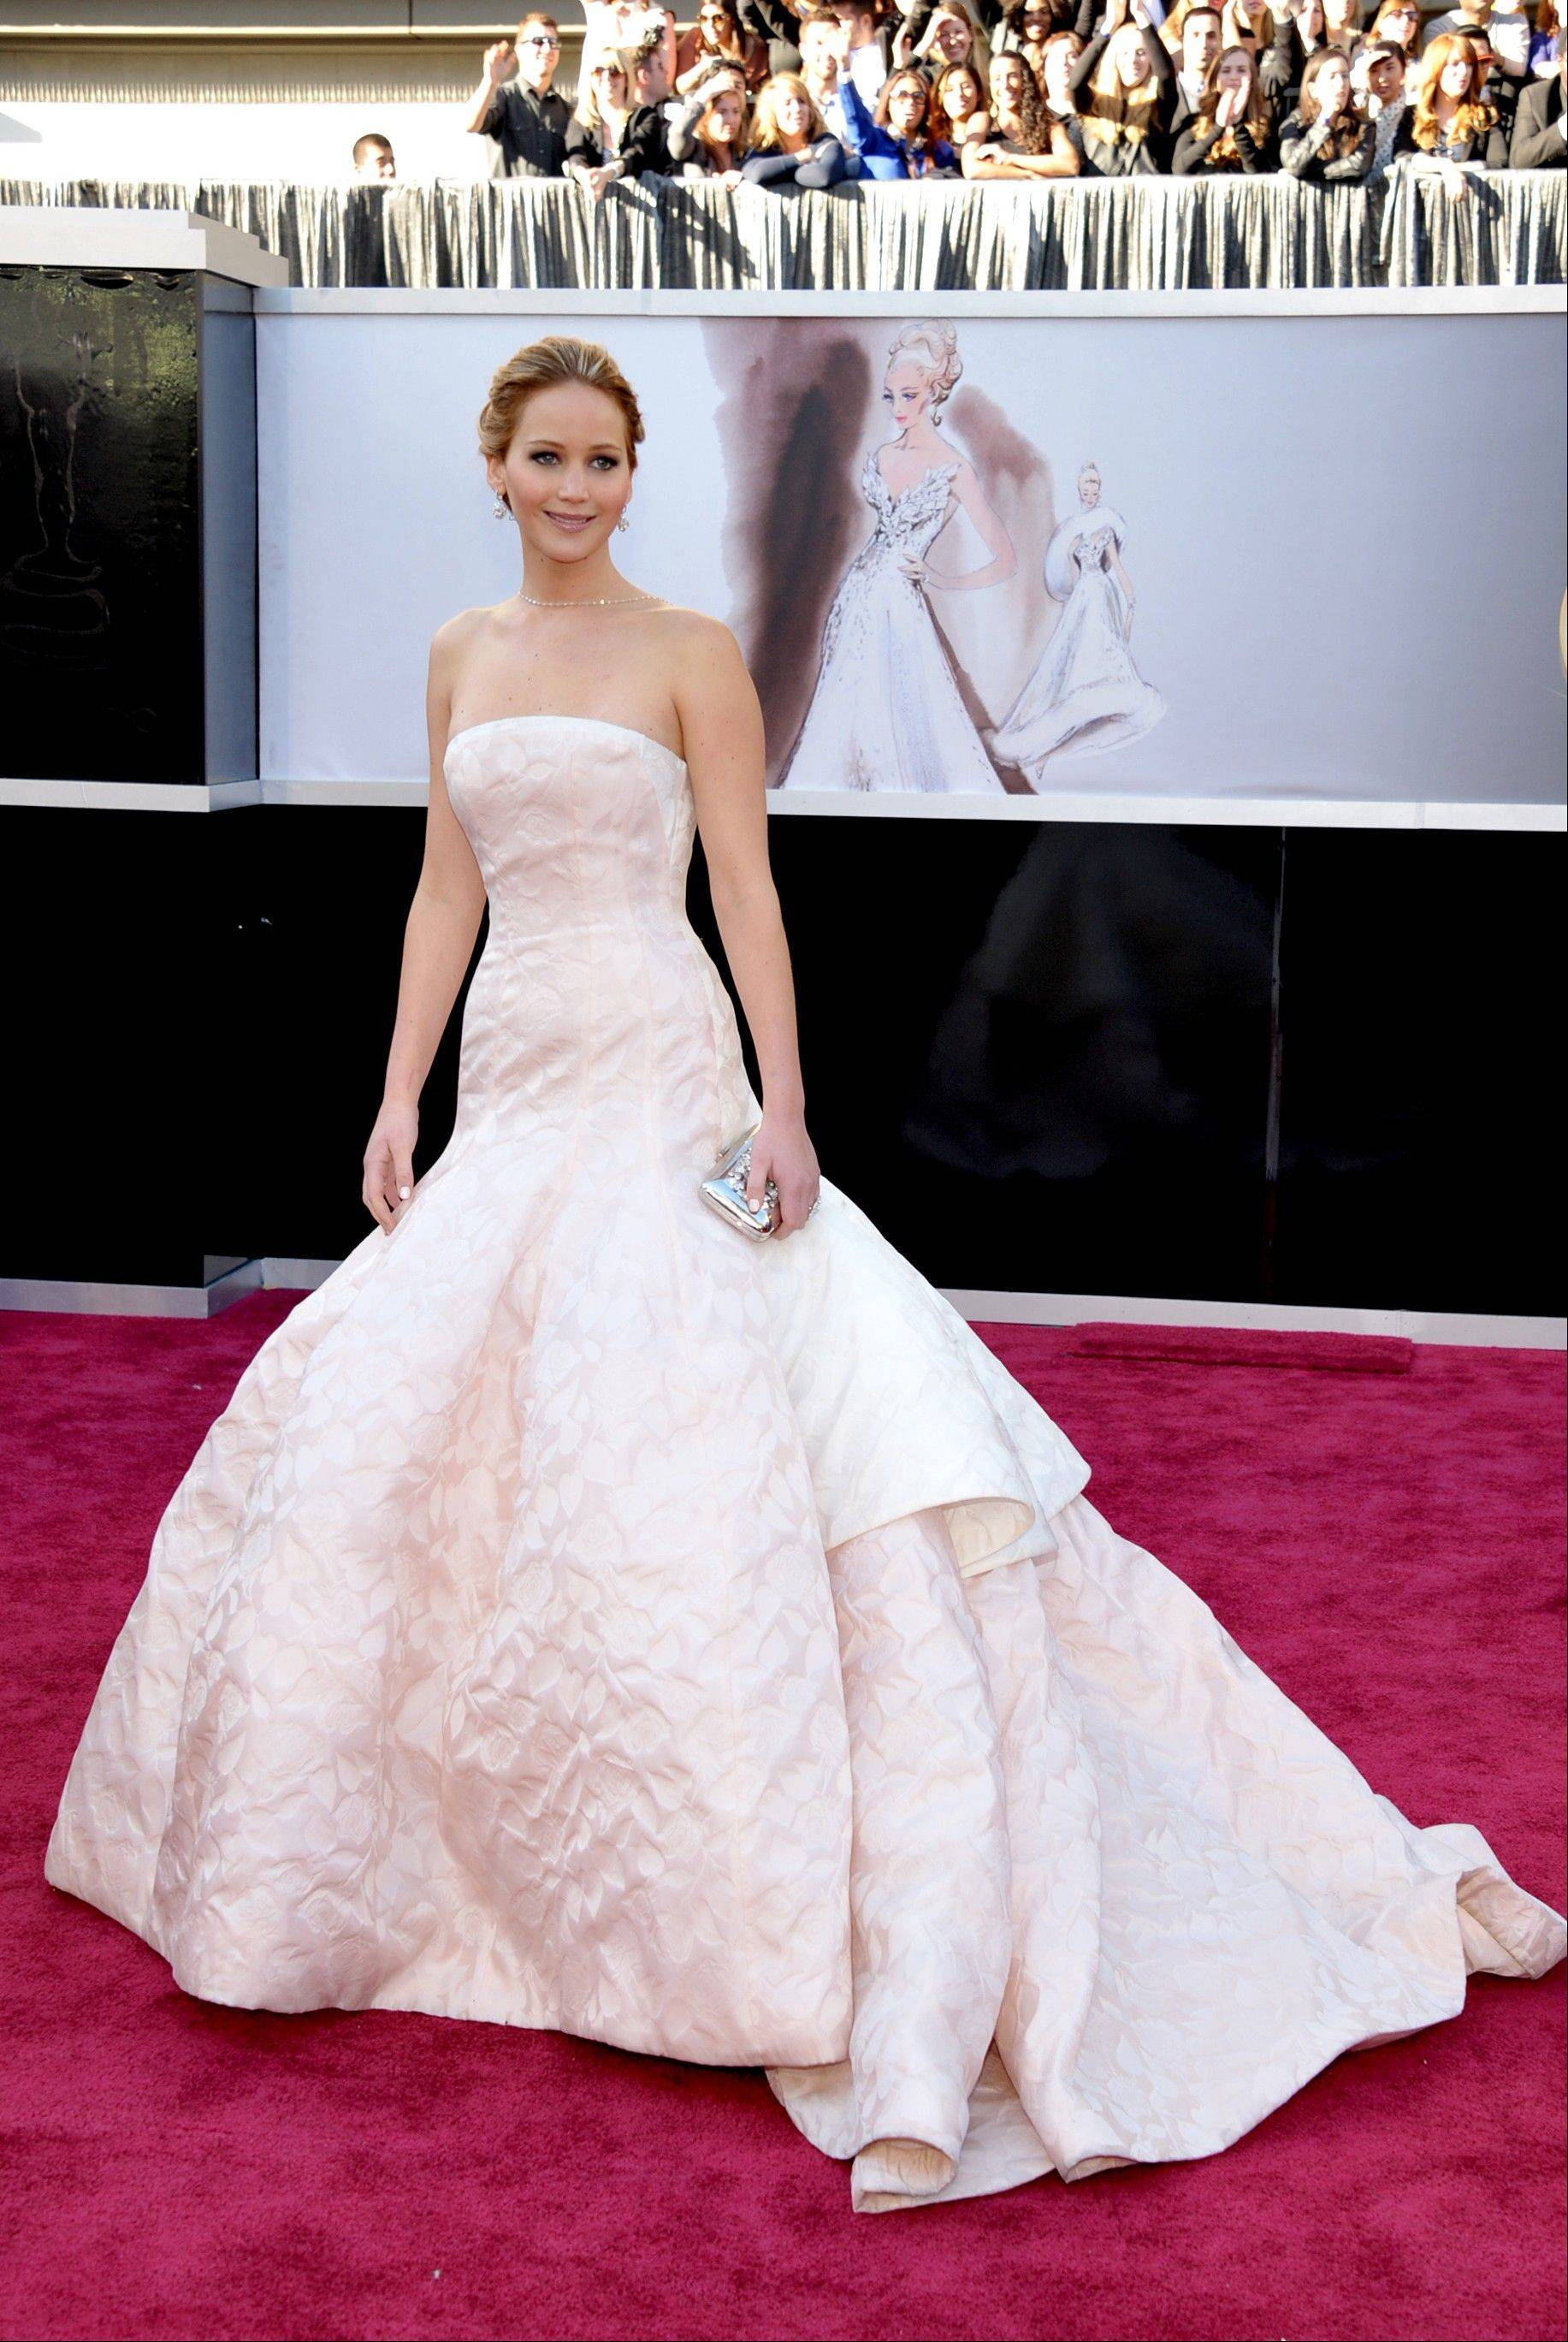 It's likely that this year's parade of fashions will include a few celebrity look-alikes such as this worn by Jennifer Lawrence at the Academy Awards.